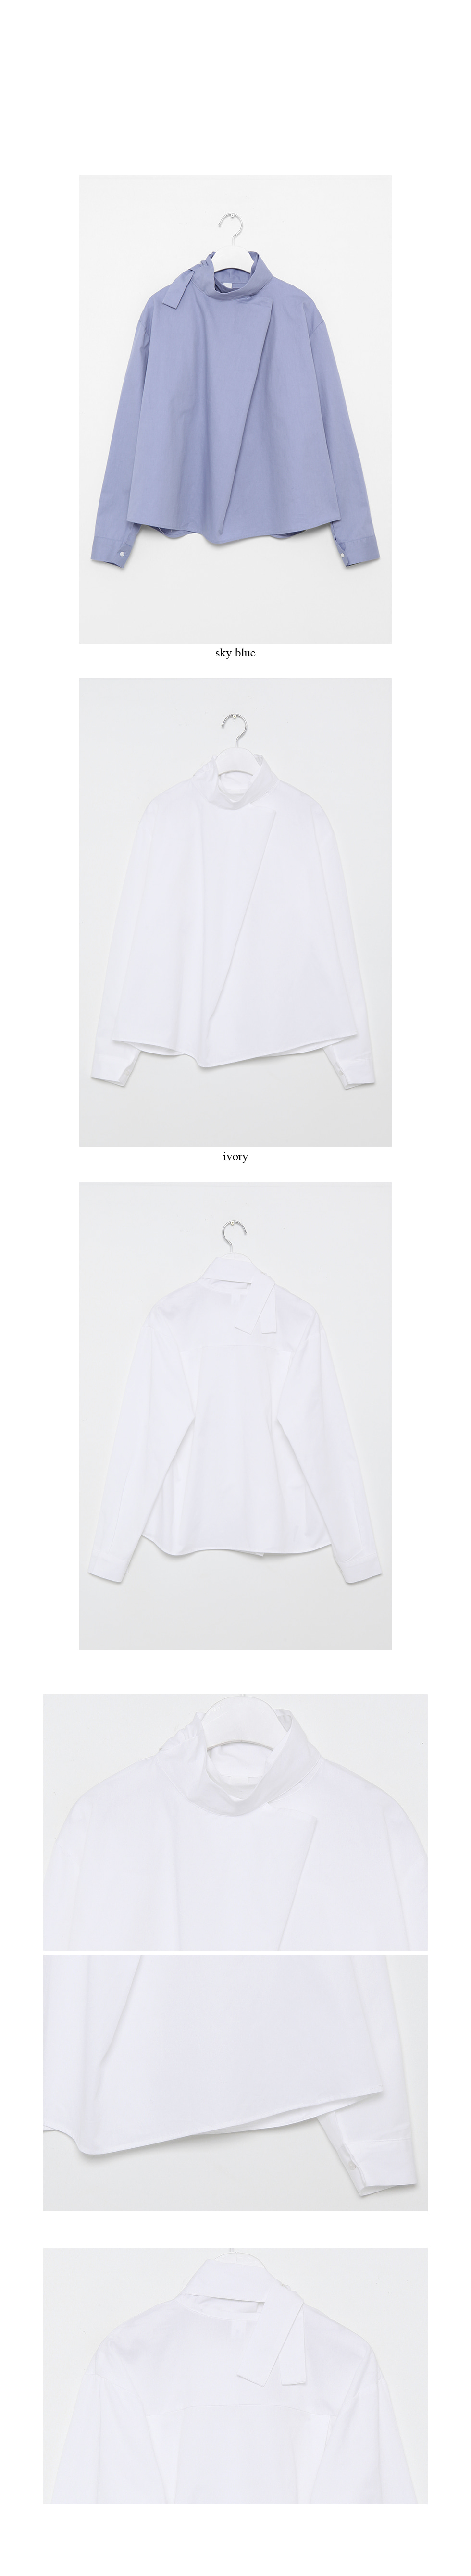 high neck french blouse